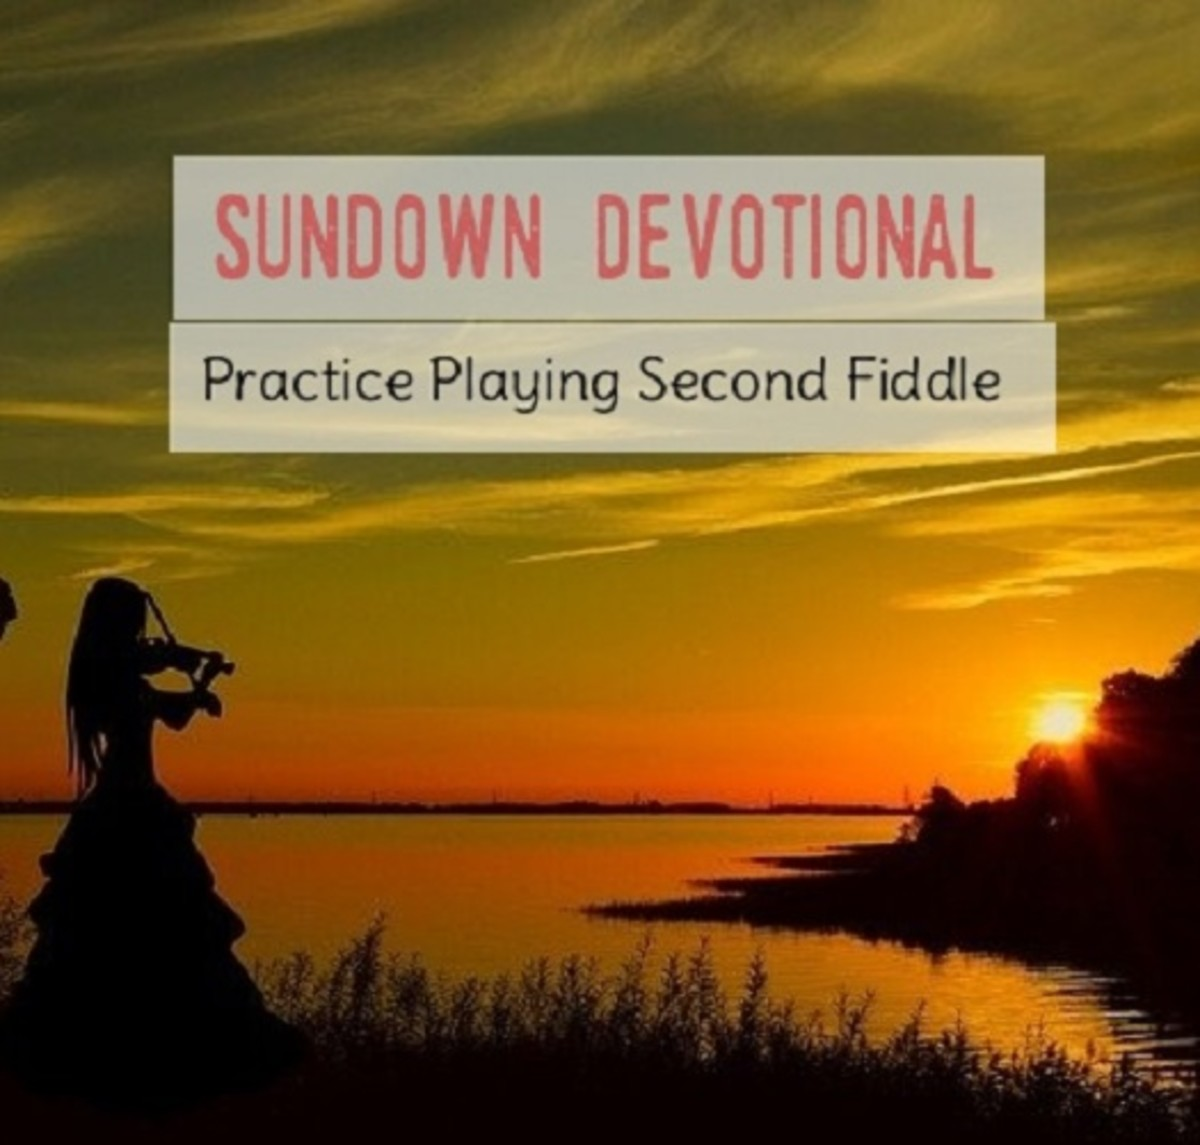 Sundown Devotional: Practice Playing Second Fiddle